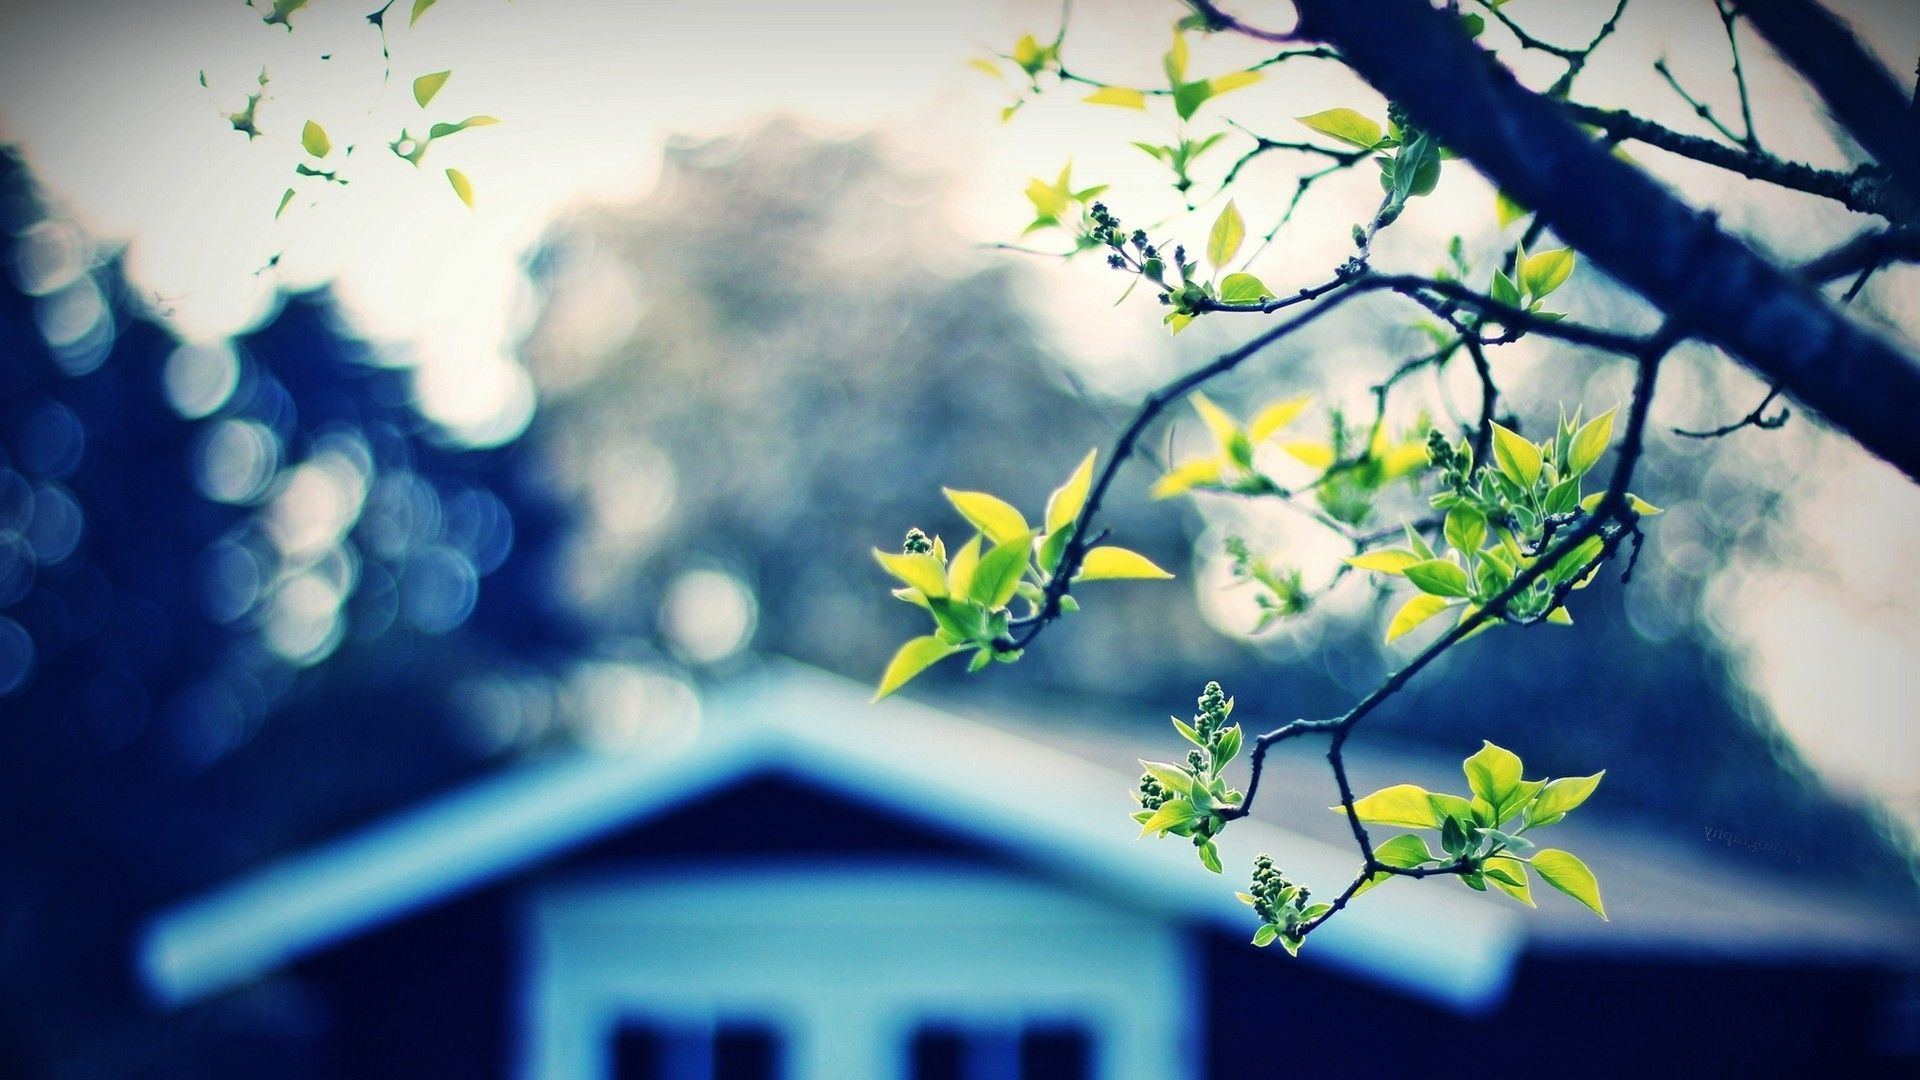 Tree And House Hd 1080p Wallpapers Download Nature Photography 1080p Wallpaper Wallpaper